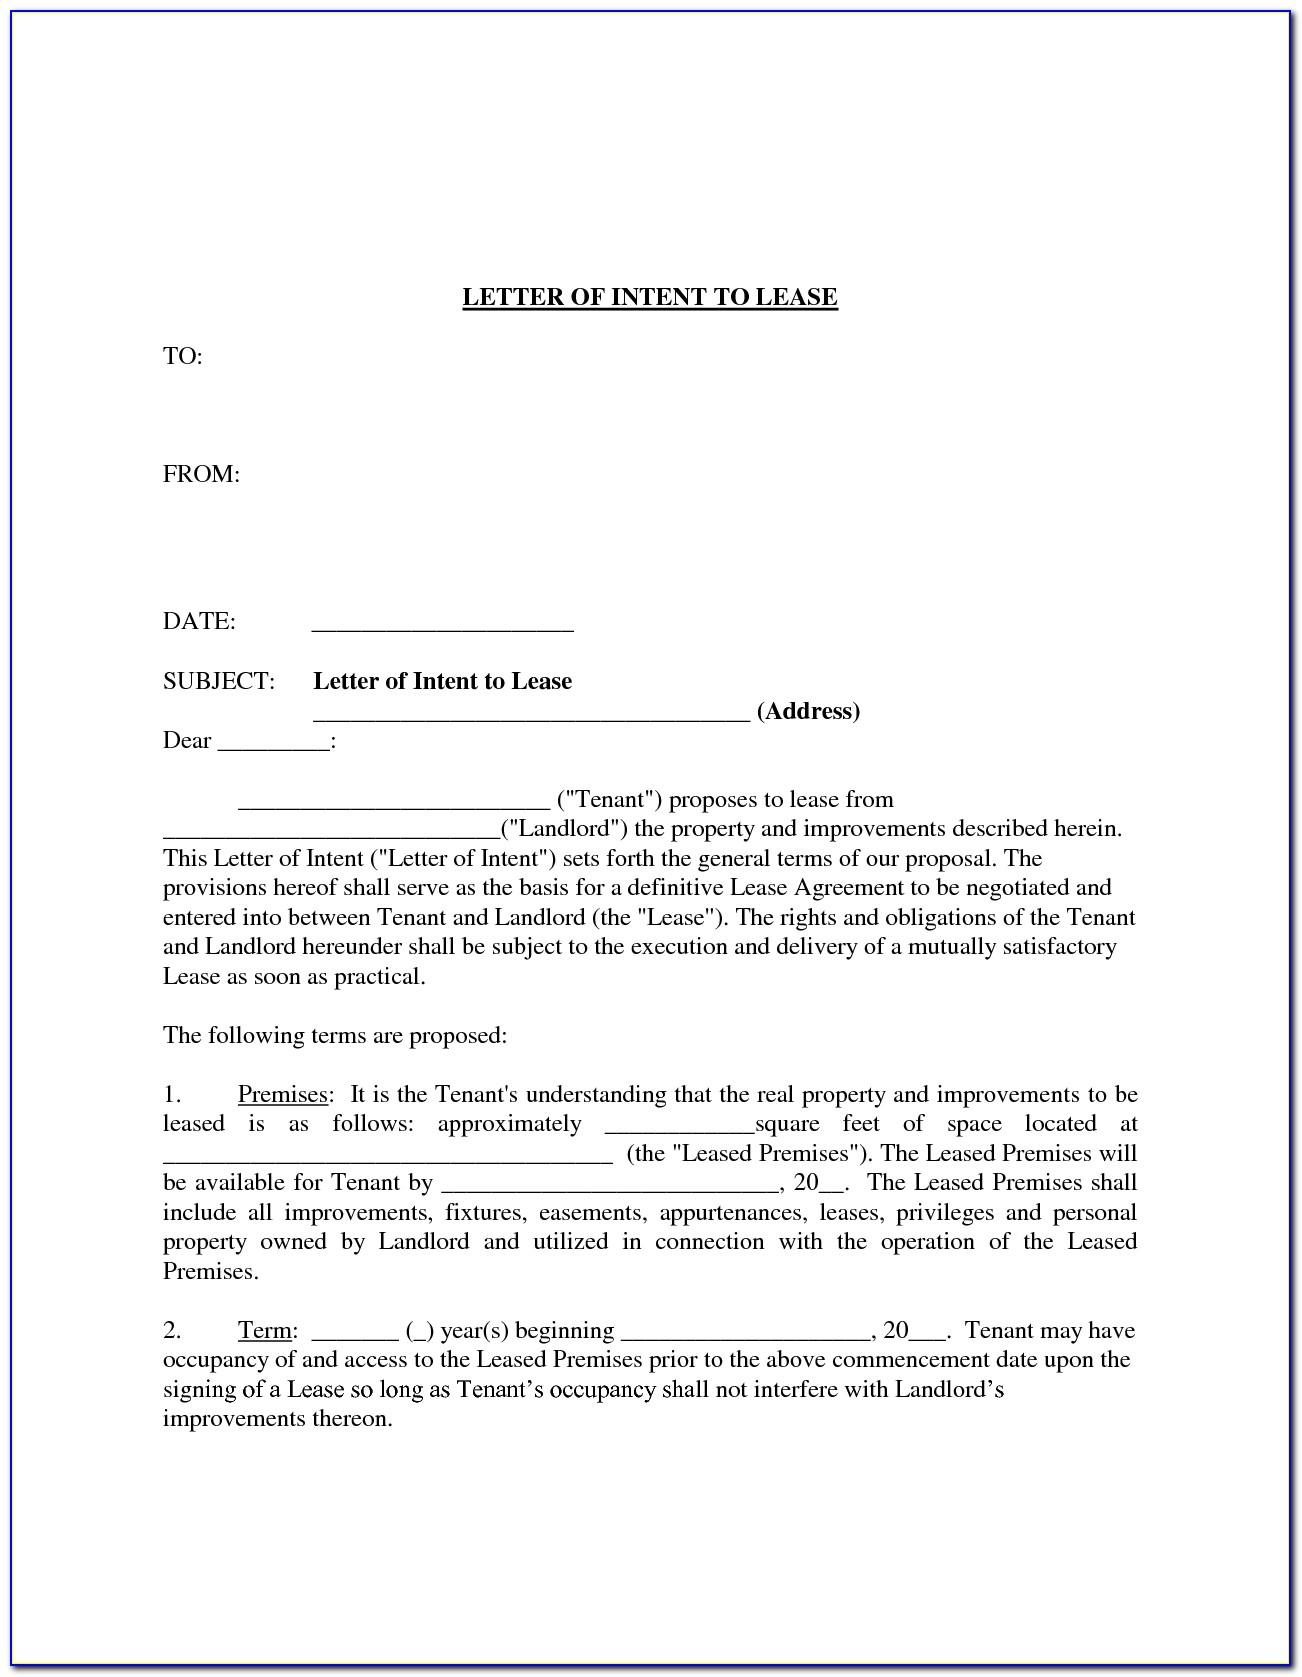 Letter Of Intent To Lease Template Word